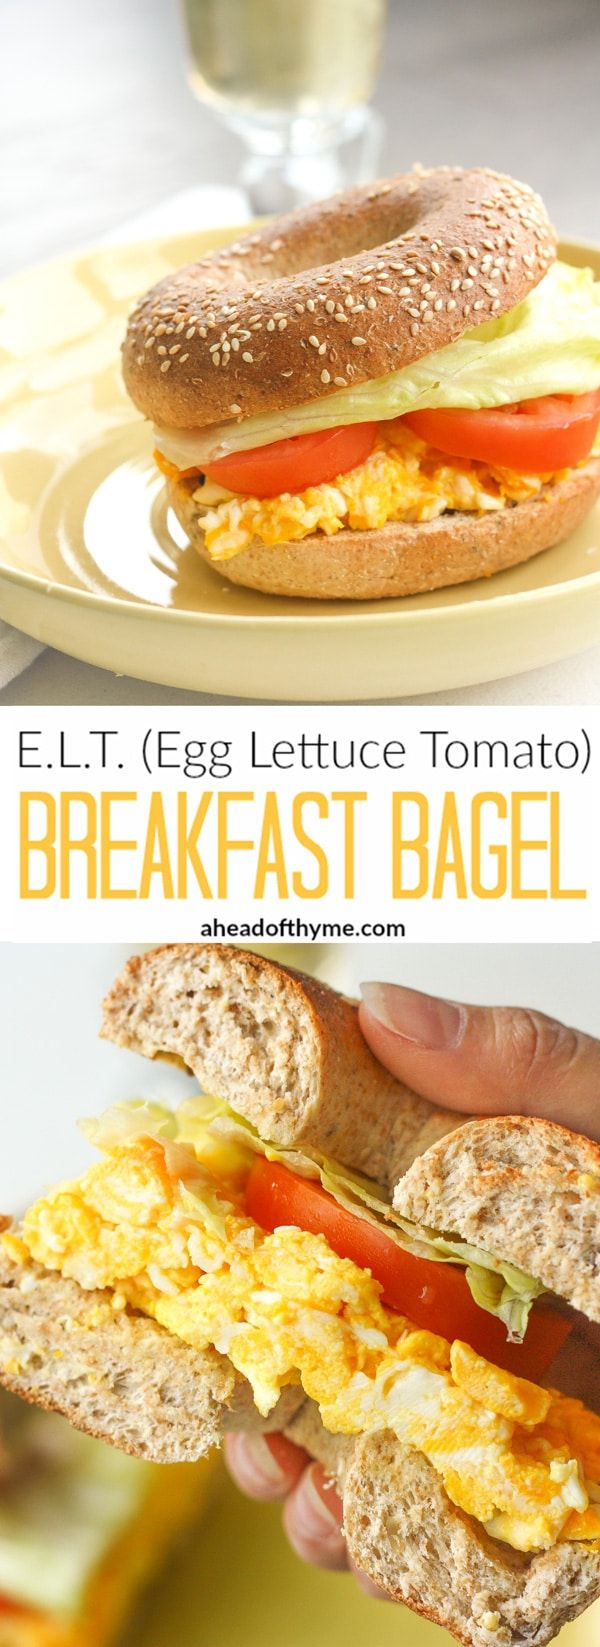 E.L.T (Egg Lettuce Tomato) Breakfast Bagel: Start your morning right and curb your hunger with a healthy and classic breakfast bagel | aheadofthyme.com via @aheadofthyme